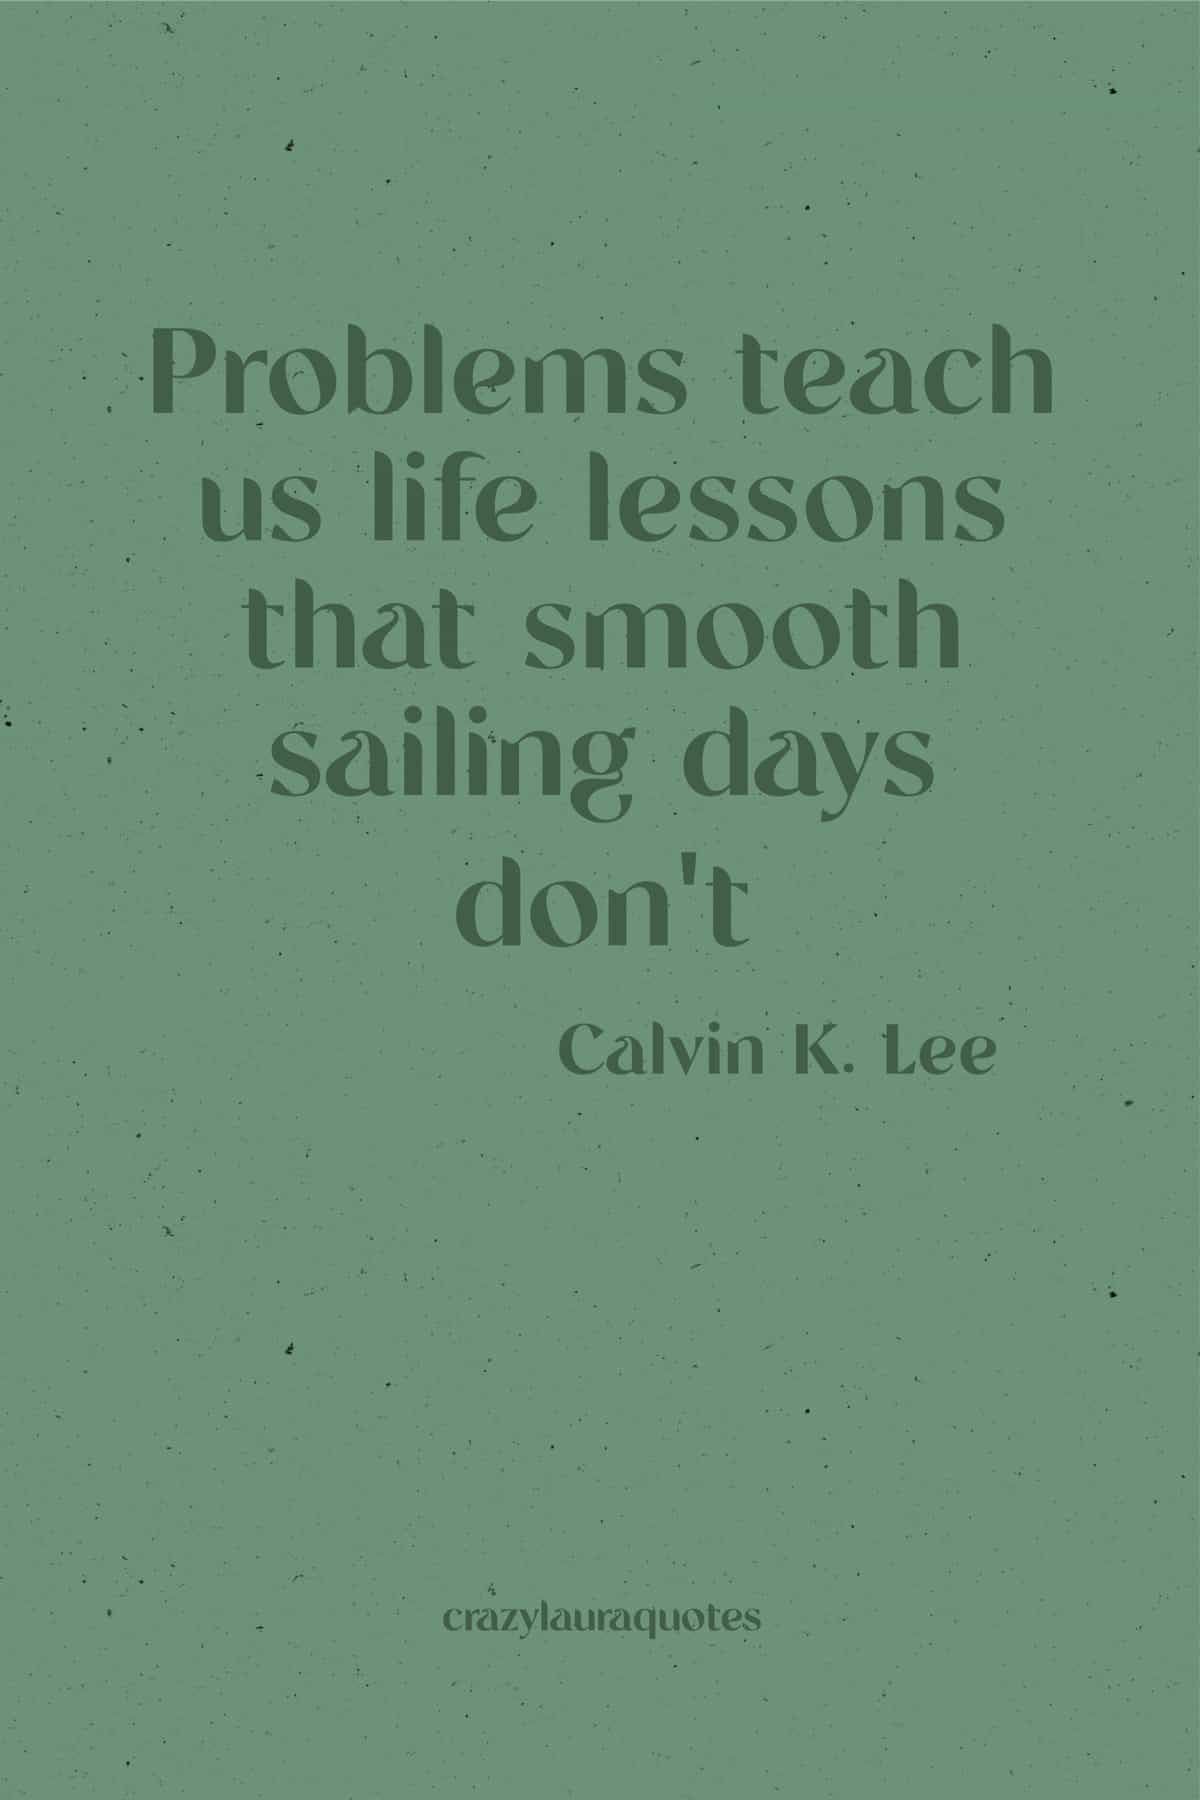 problems teach lessons quote